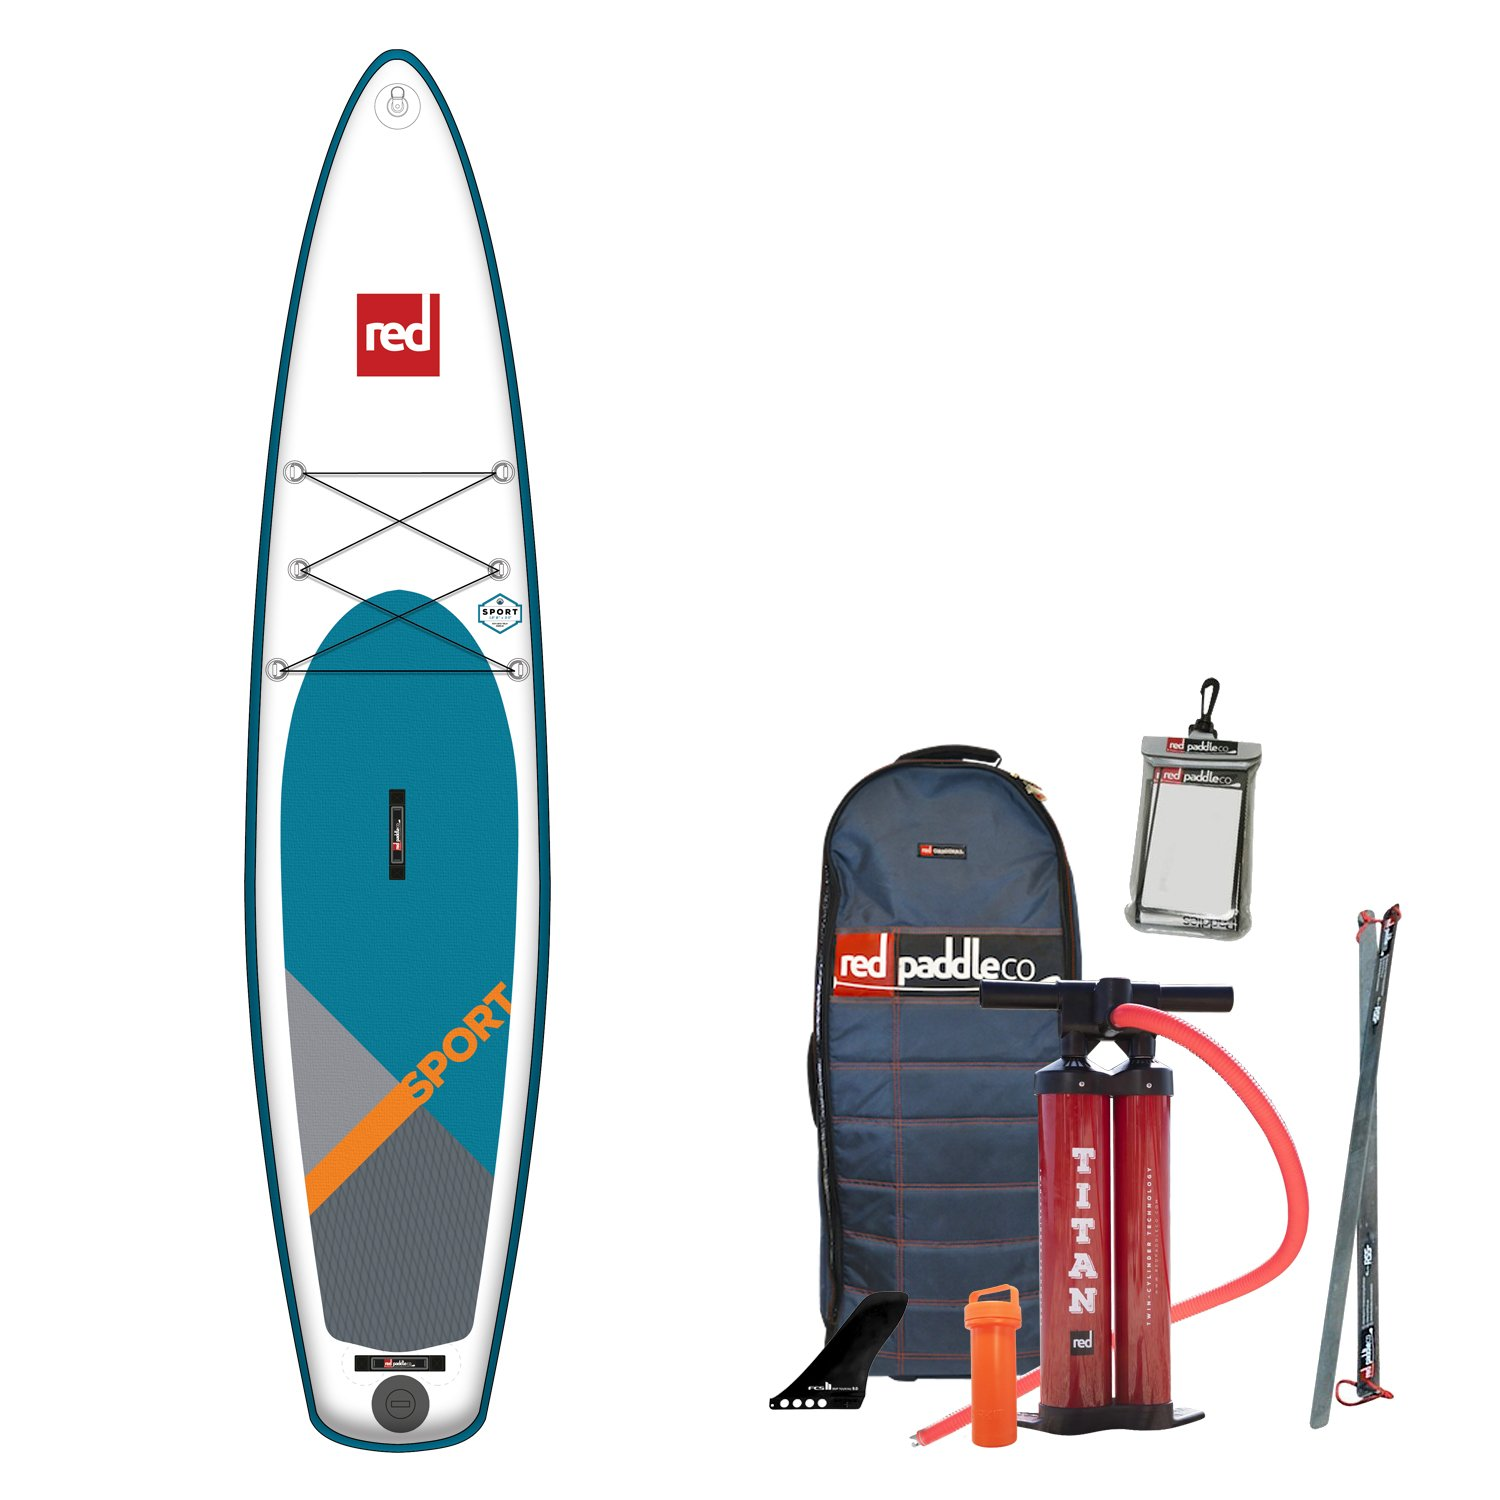 Red Paddle Co 2018 Sport 126 Inflatable Stand Up Paddle Board + Bag, Pump, Paddle & Leash: Amazon.es: Deportes y aire libre